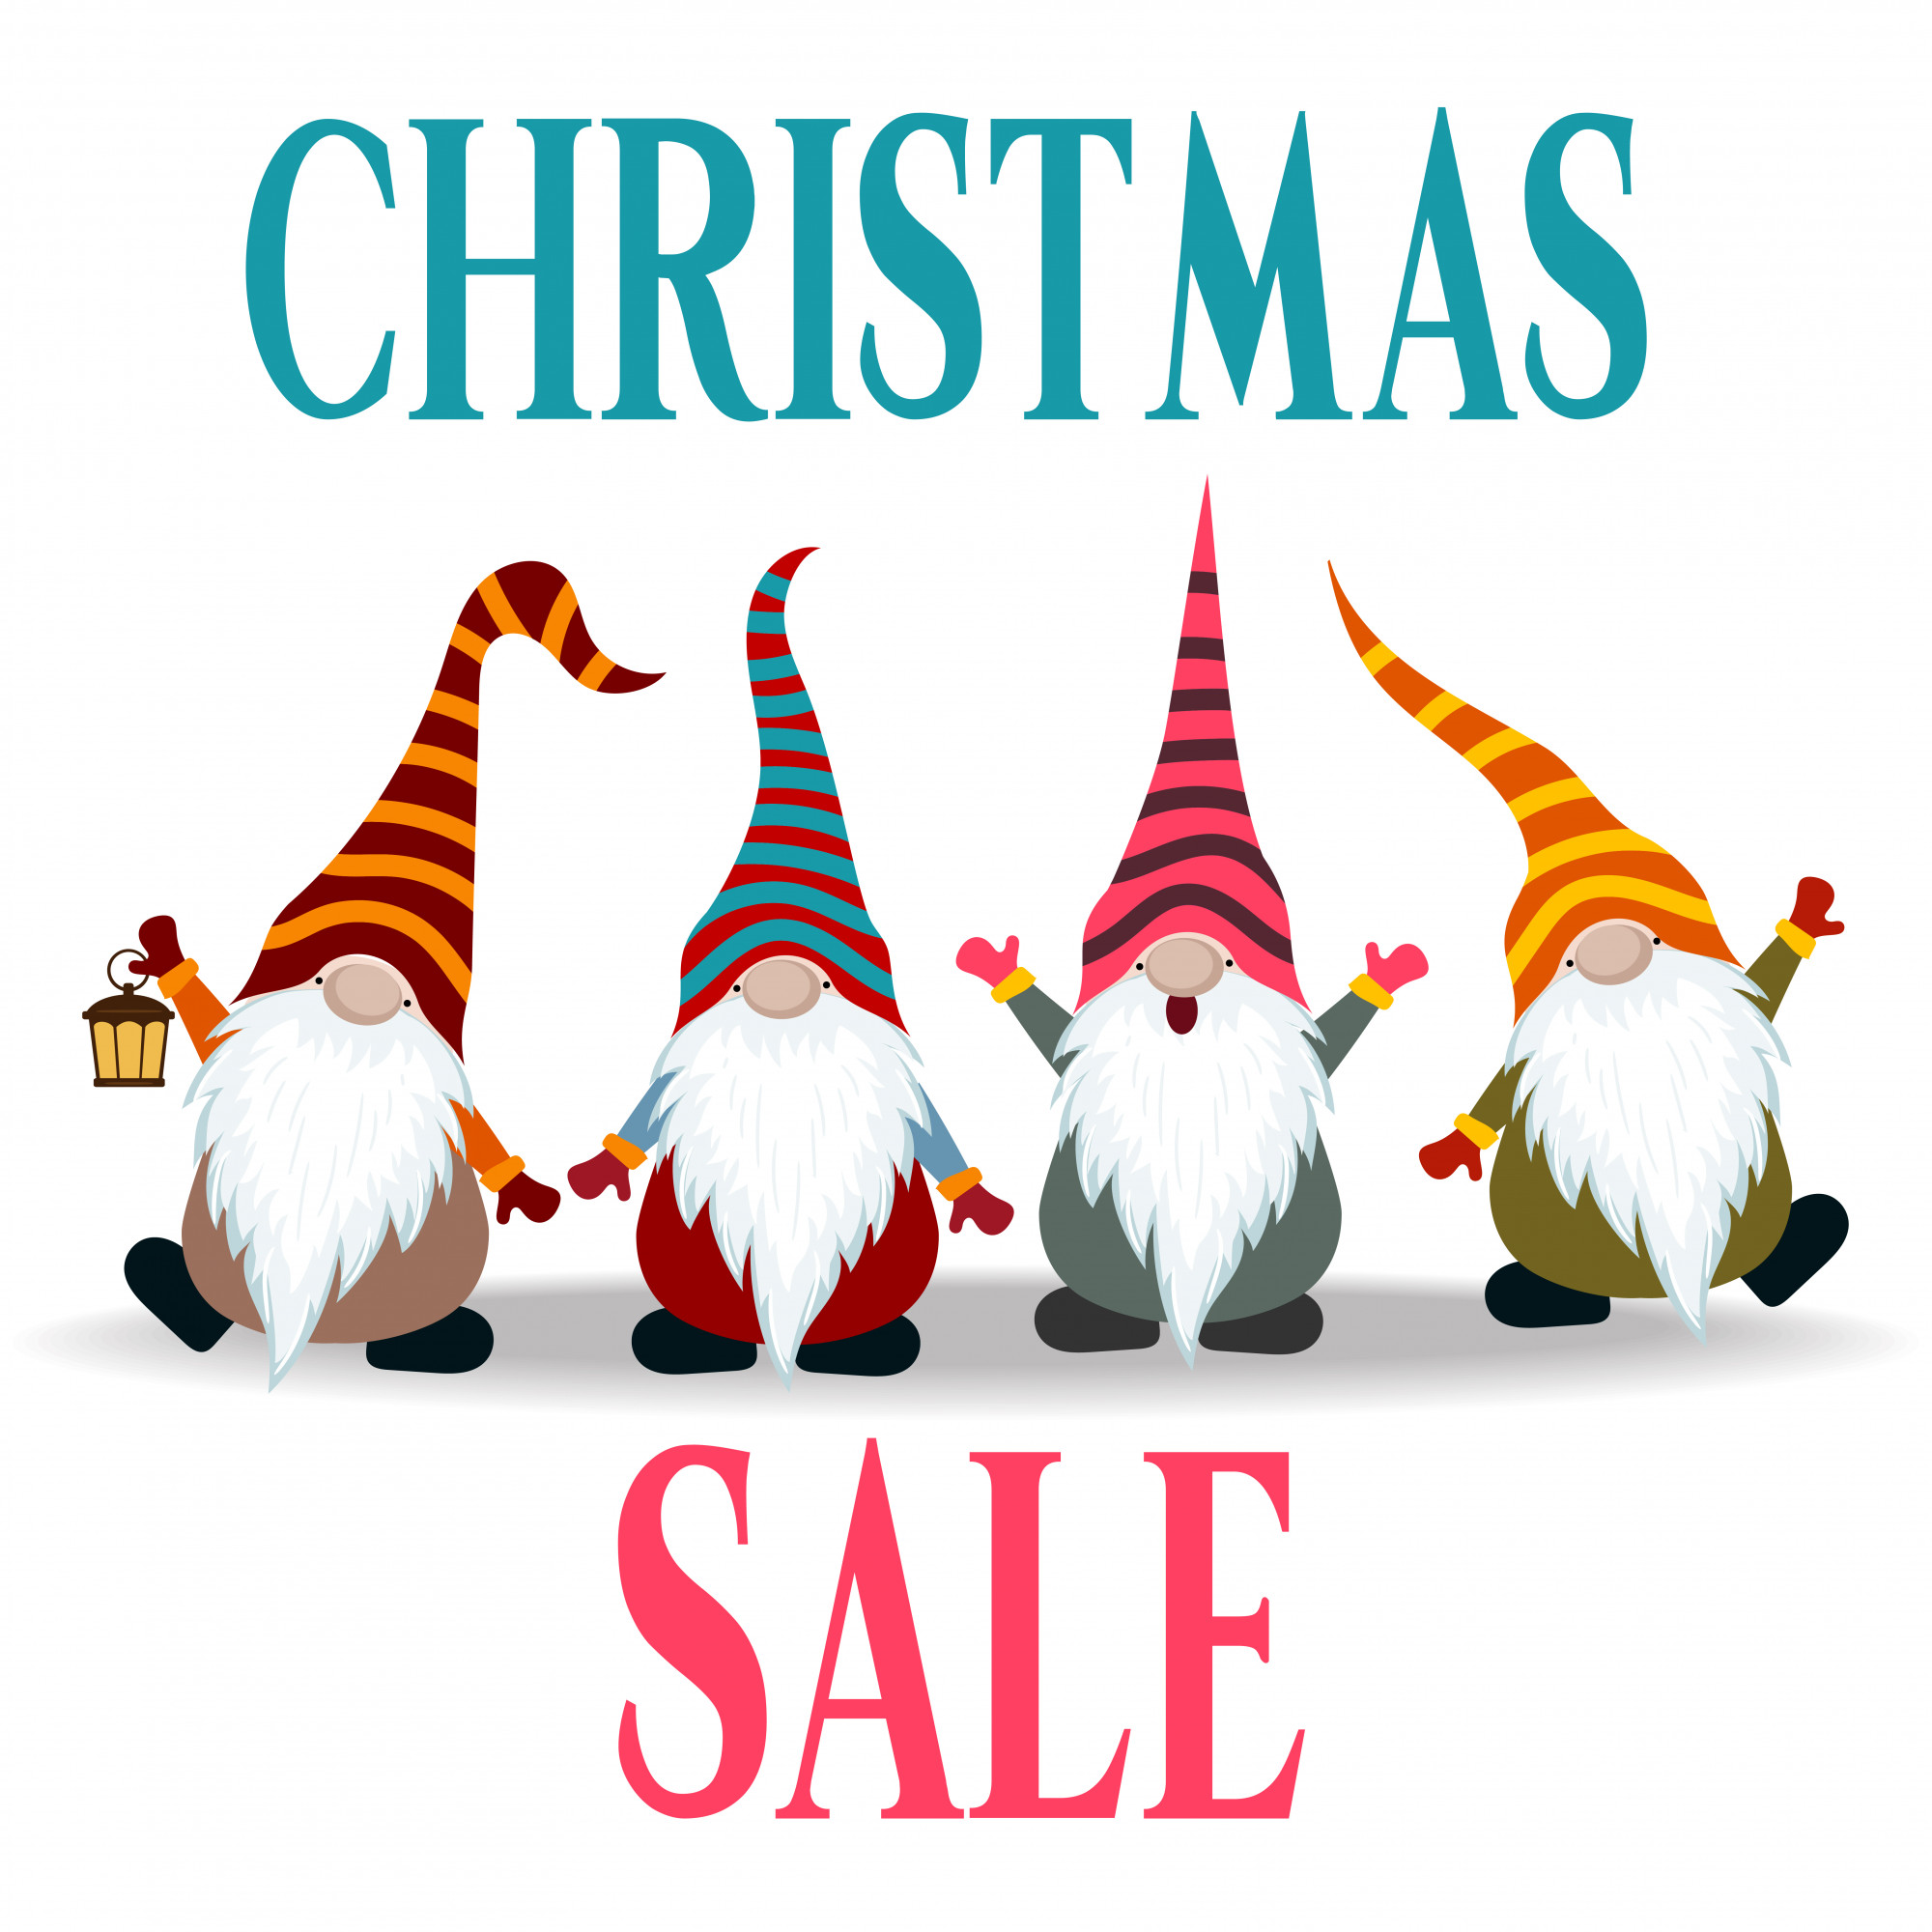 Christmas sale banner with gnomes